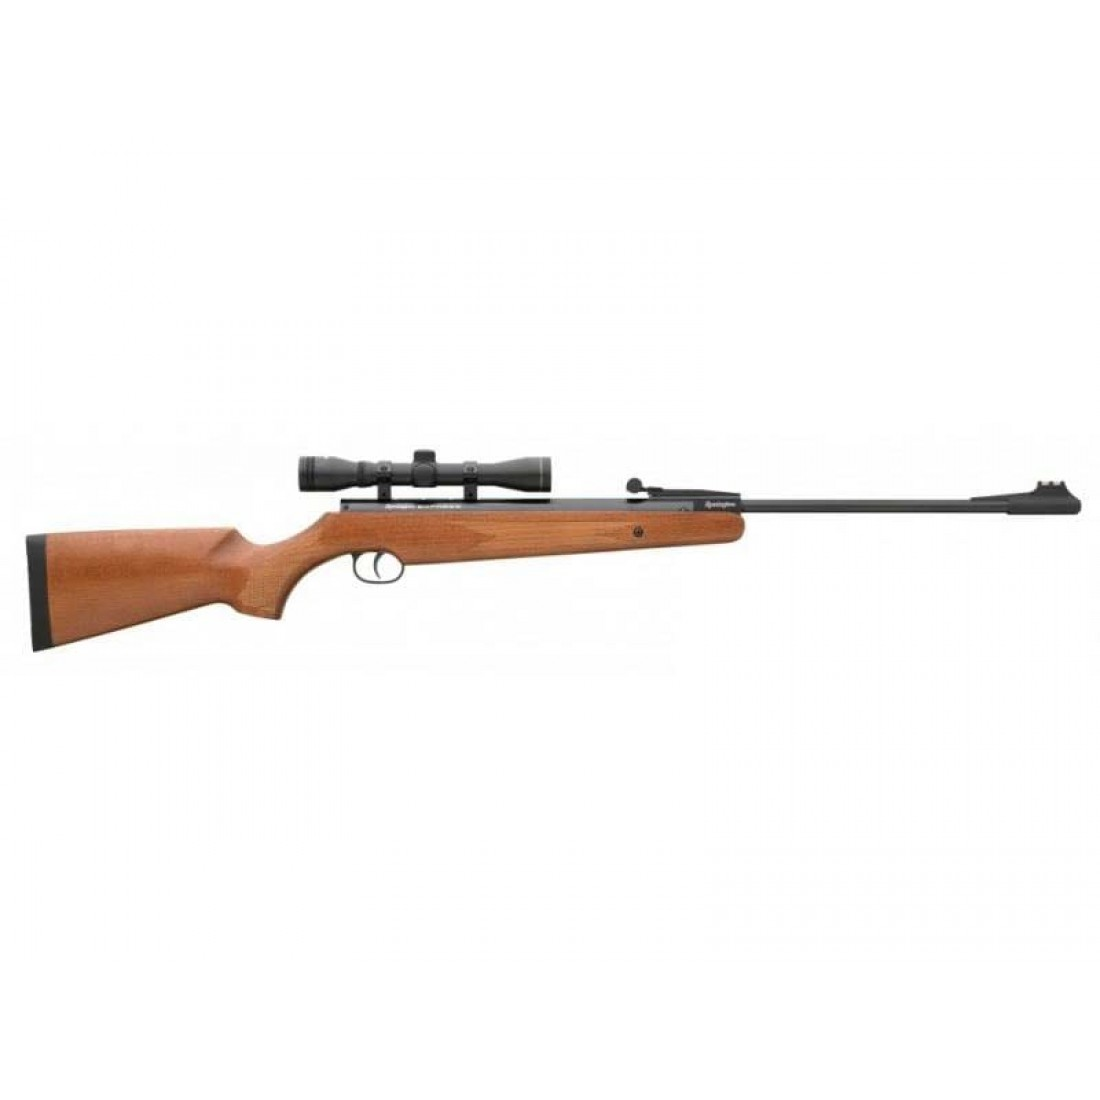 Remington Express Rifle with scope